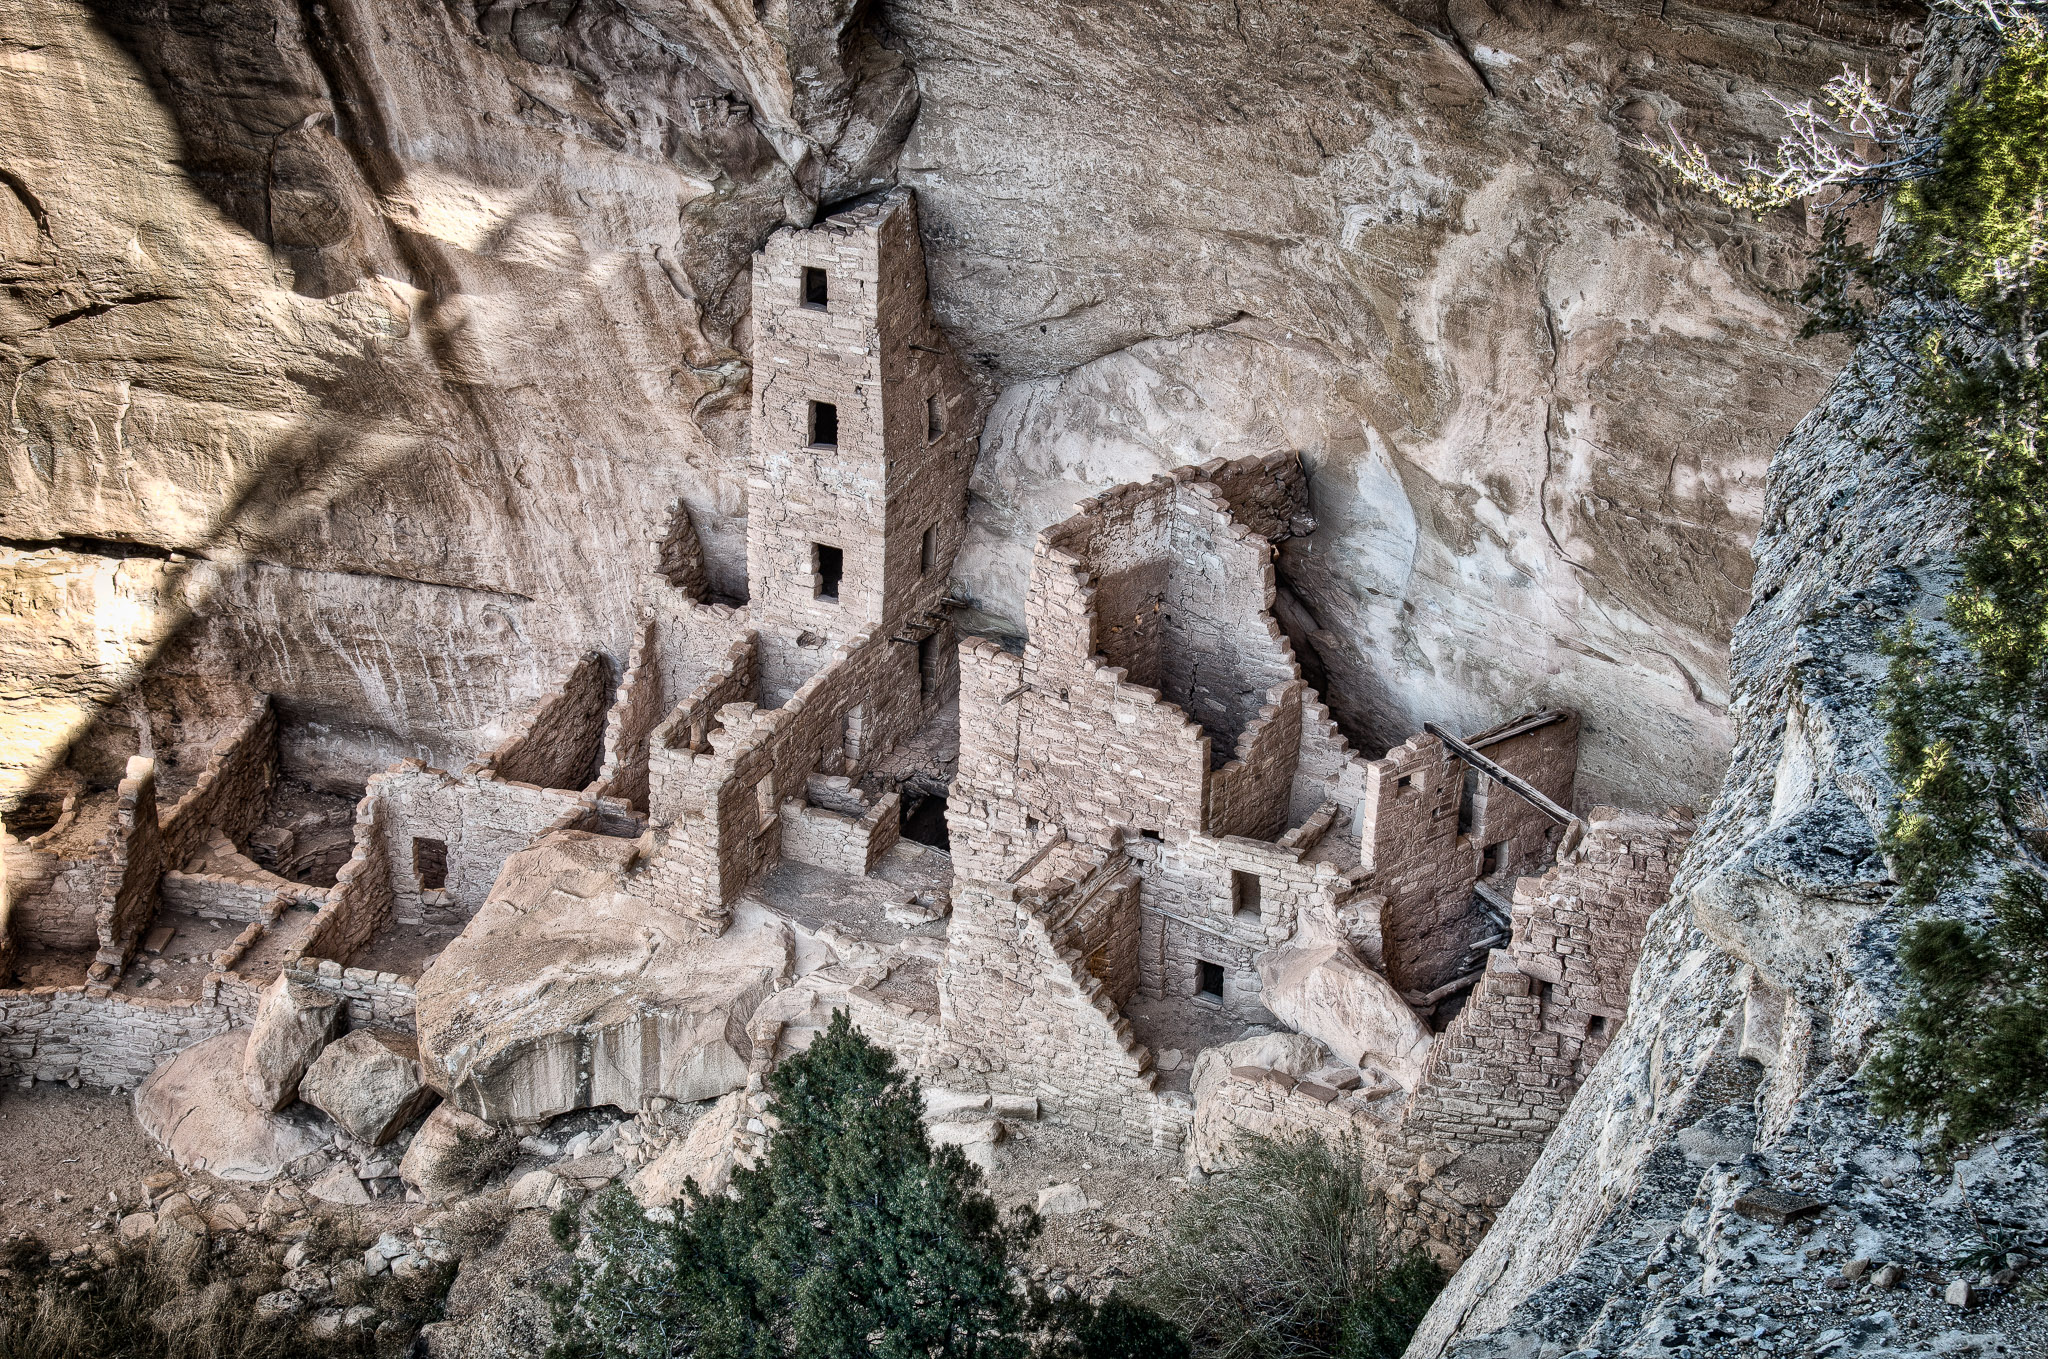 Square Tower House Ruins. in Mesa Verde National Park near Cortez and Durango, Colorado.